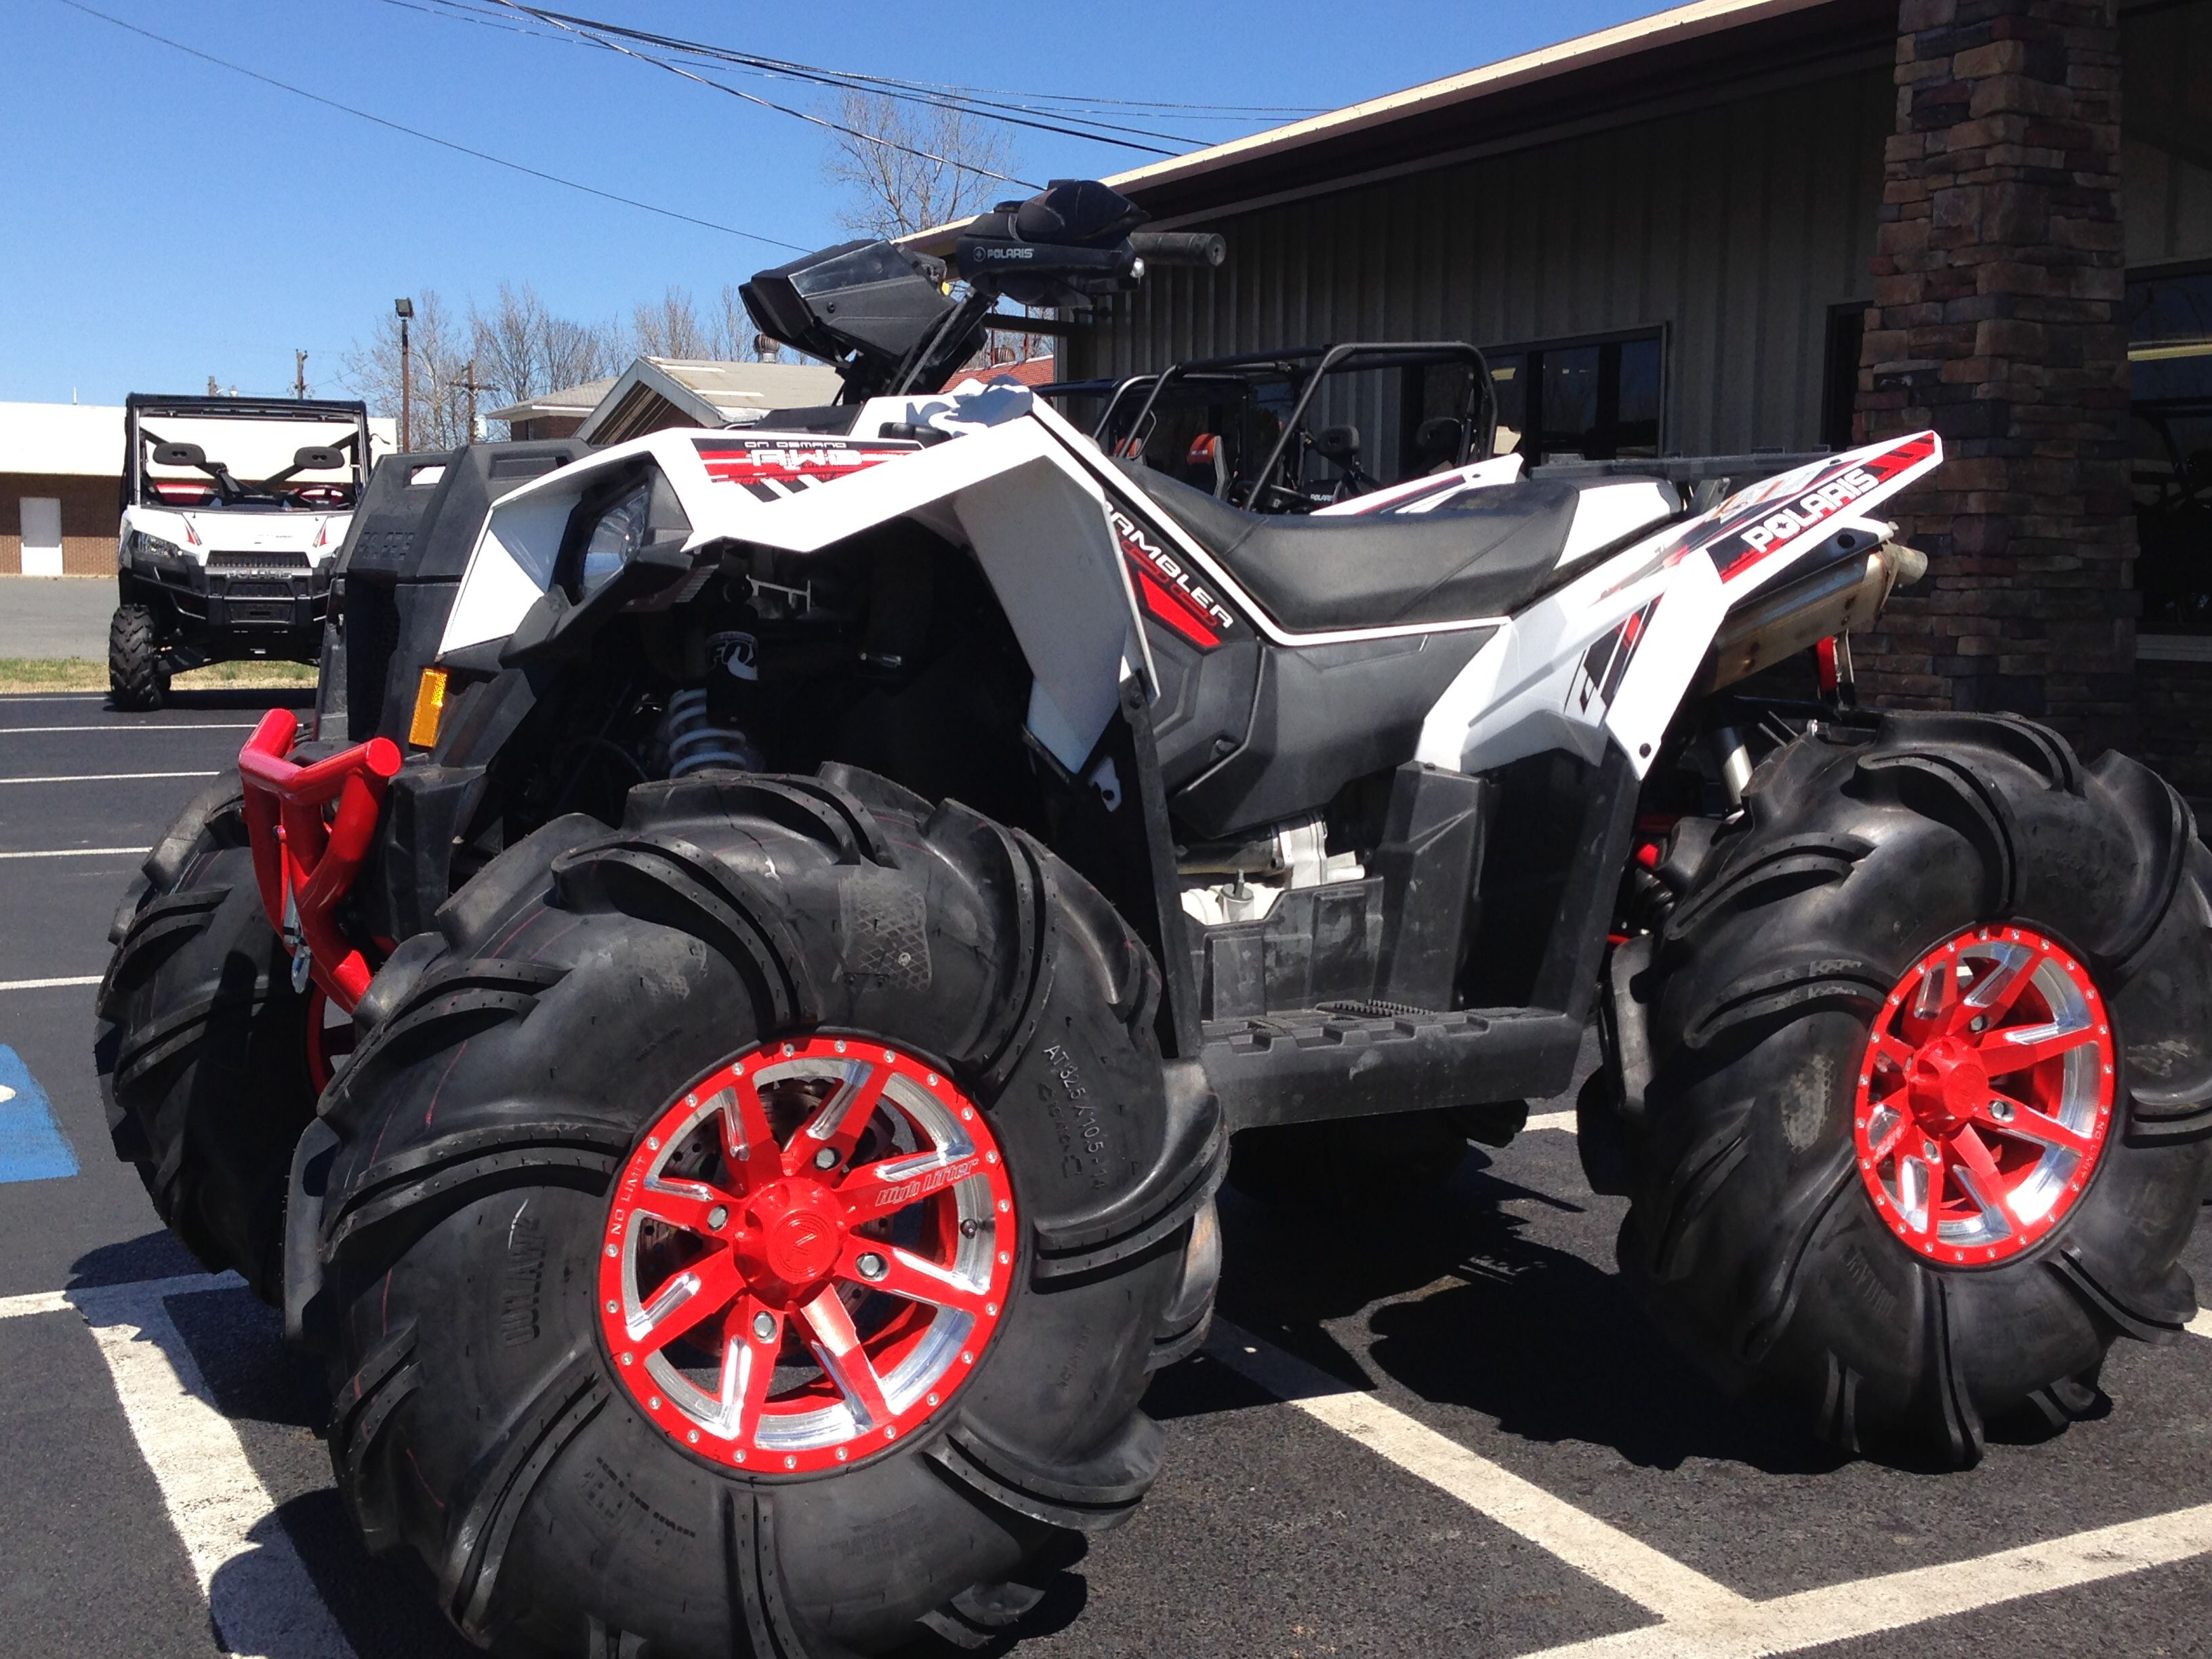 polaris scrambler 1000 white lightning 32 1 2 outlaw tires and no limit wheels 5in outcast lift [ 3264 x 2448 Pixel ]